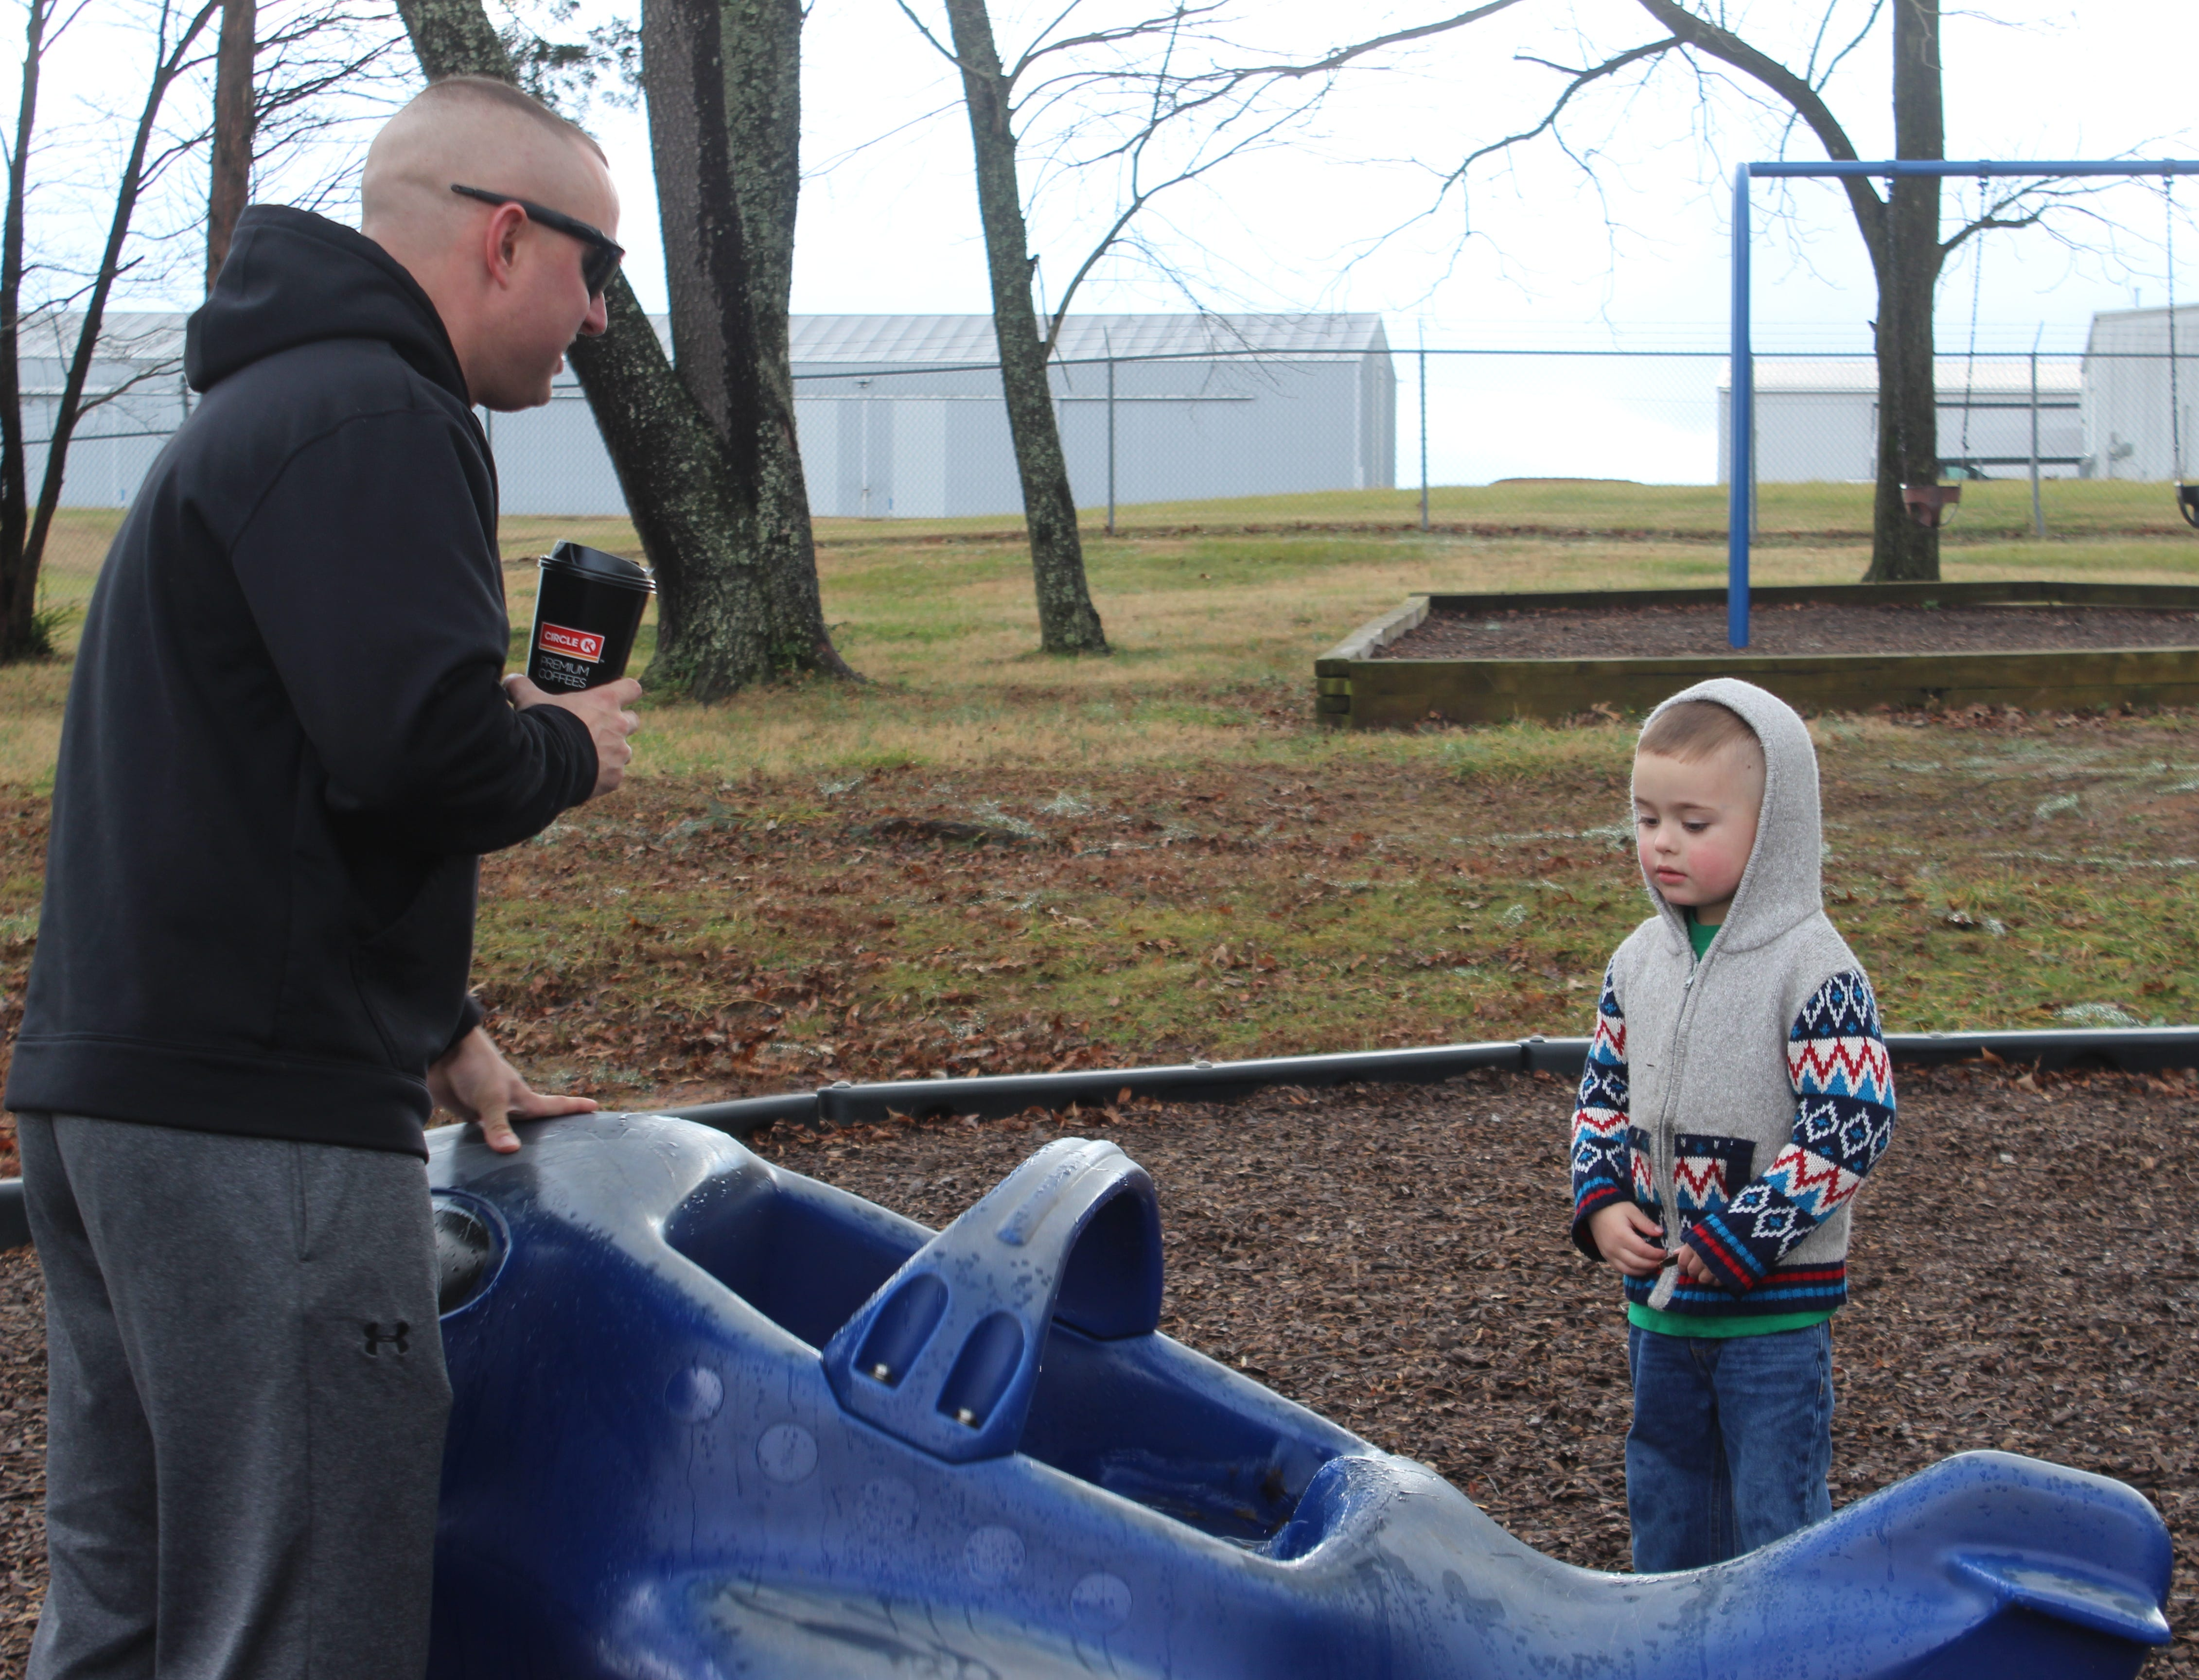 David Taylor spends time with his son Alexander at his favorite playground at Barbara E. Johnson Park next to Outlaw Field.